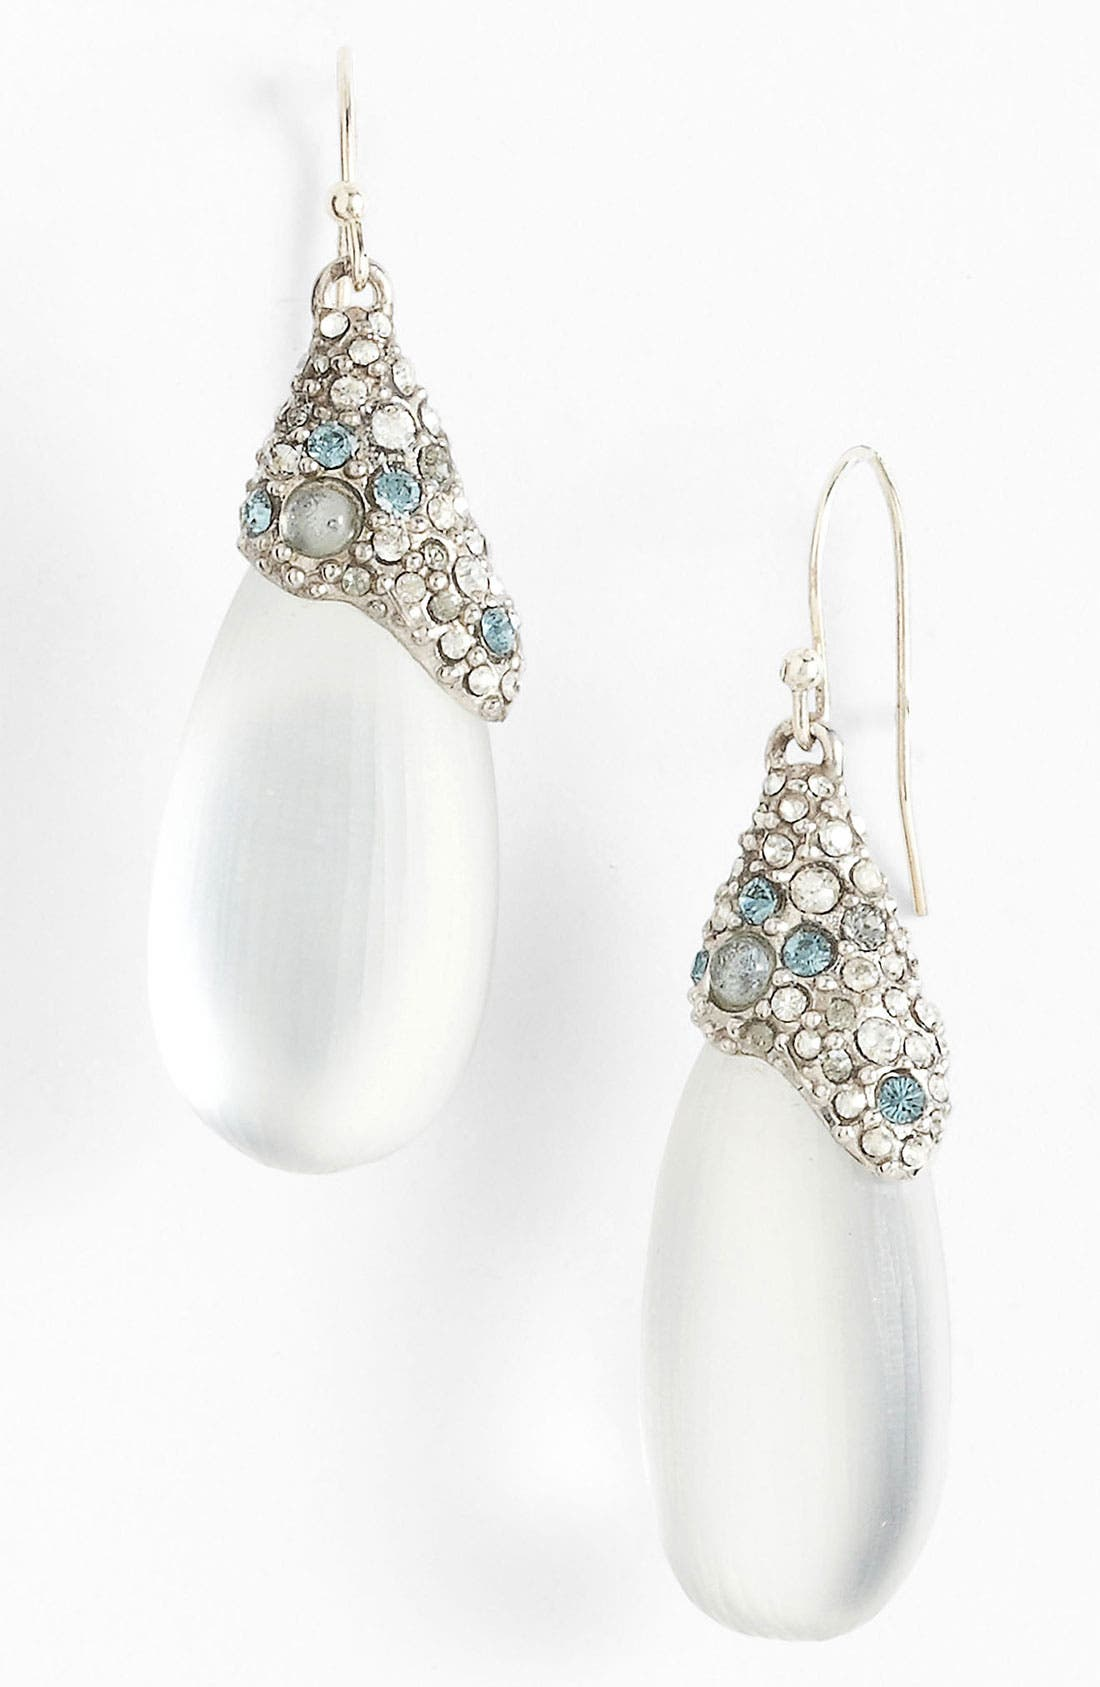 Main Image - Alexis Bittar 'Modular' Encrusted Teardrop Earrings